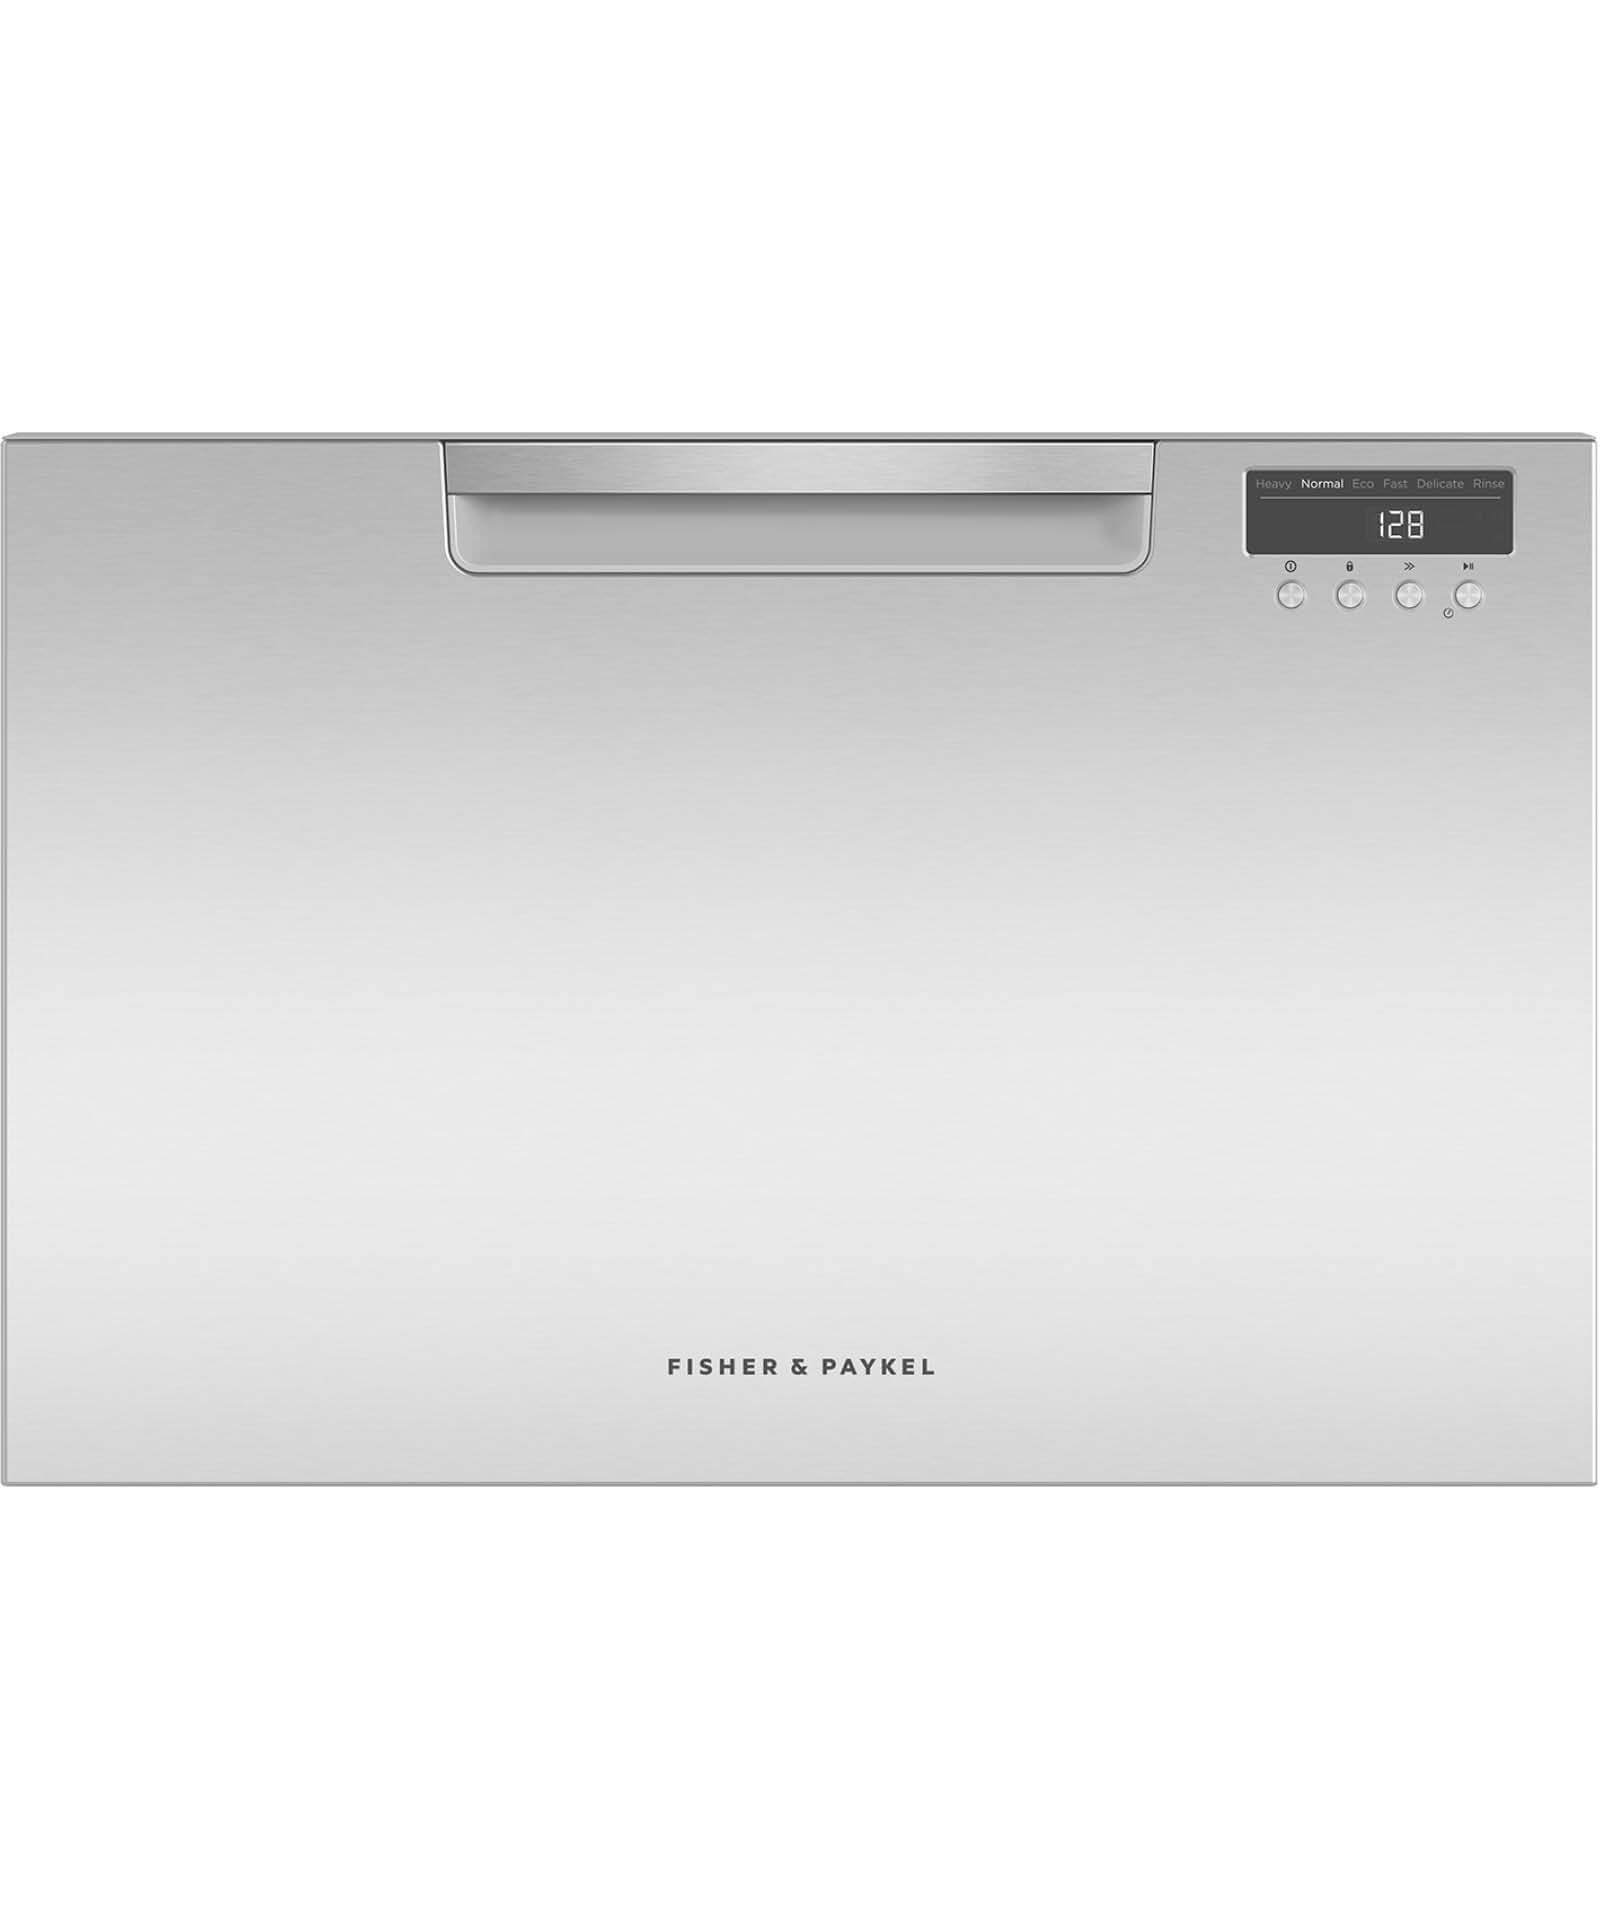 DD60SAHX9 - Single DishDrawer™ Dishwasher with water softener - 81614